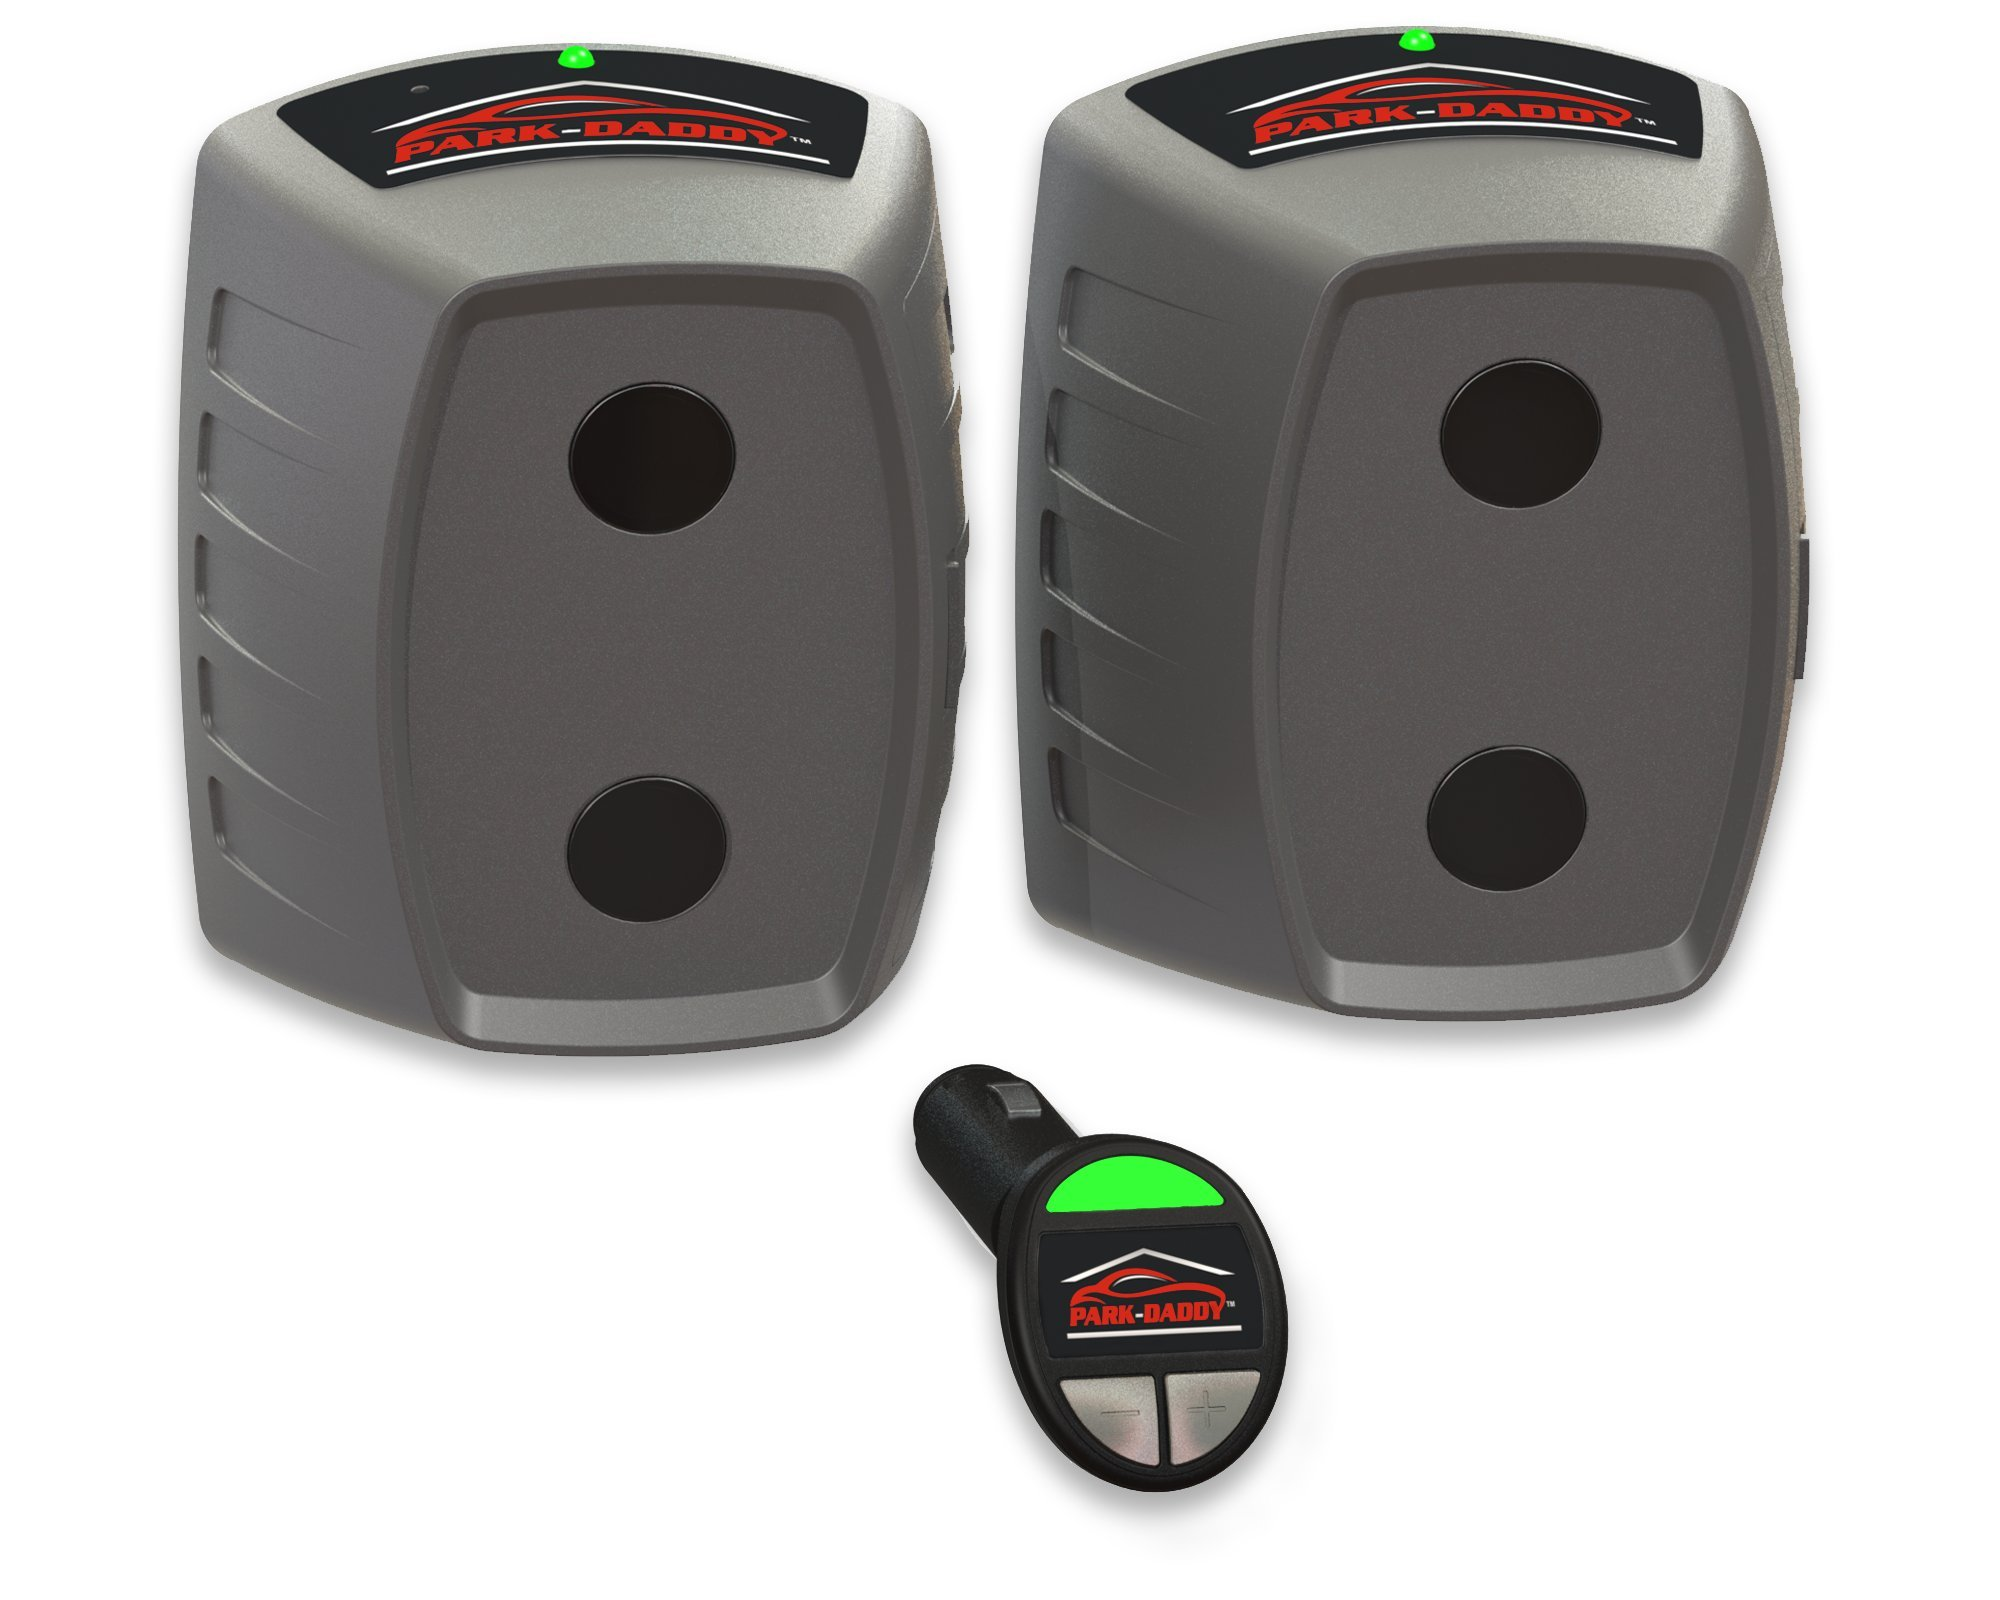 Park Daddy PDY-50-AA Single-Vehicle Precision Garage Parking Aid, Maximize the area in front of your vehicle. No Hard Wiring! No Harmful Lasers!